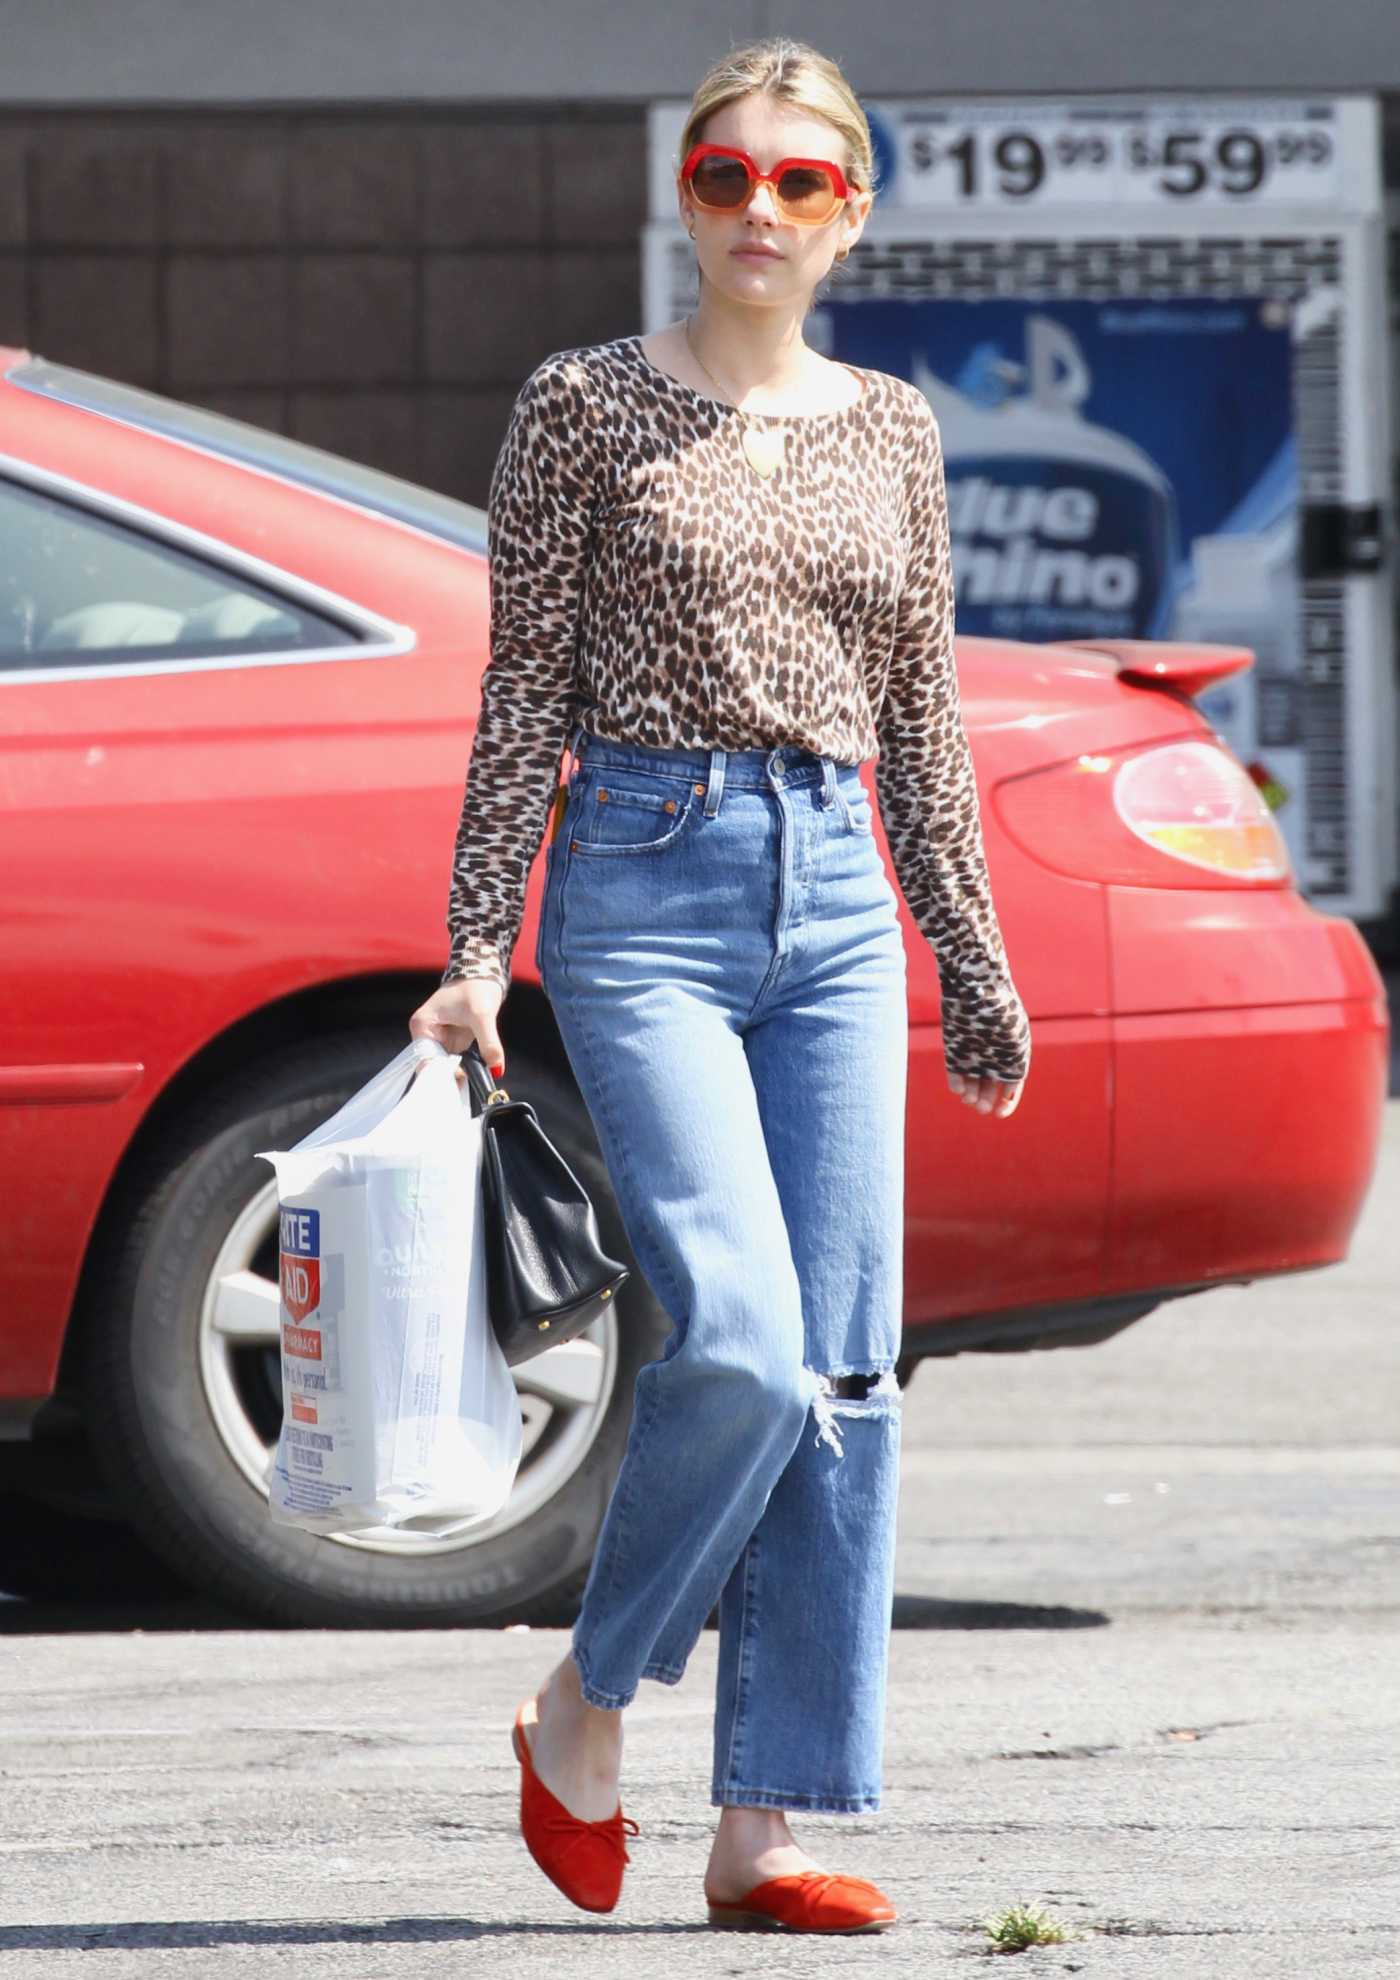 Emma Roberts in a Leopard Print Blouse Leaves a Rite Aid Store in Los Feliz 07/07/2019